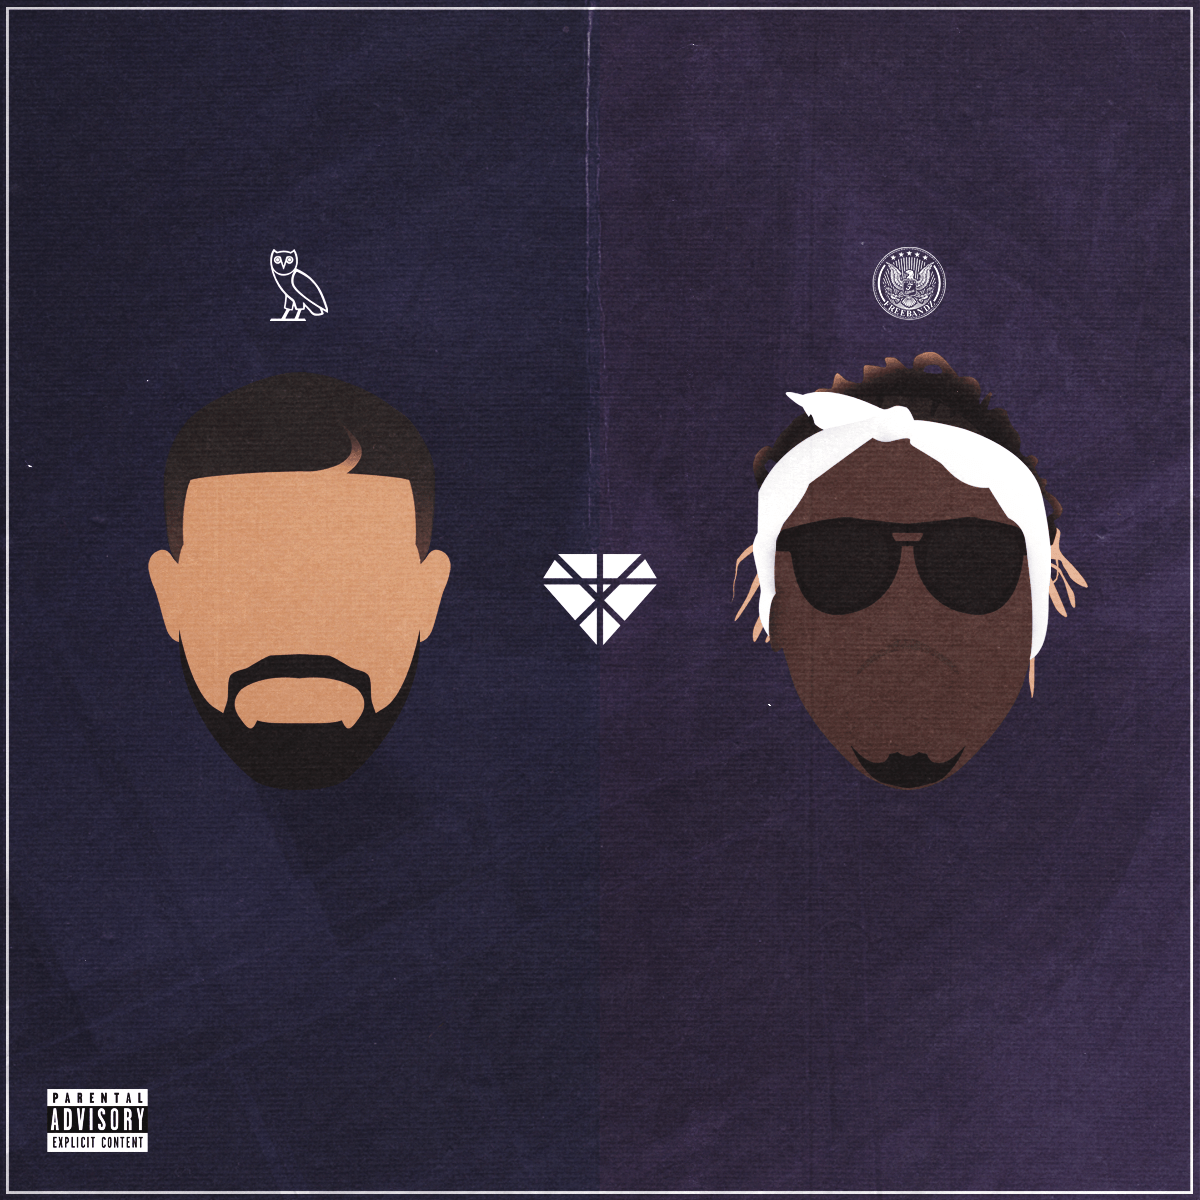 1200x1200 Drake & Future - What A Time to Be Alive [1200x1200] - Imgur